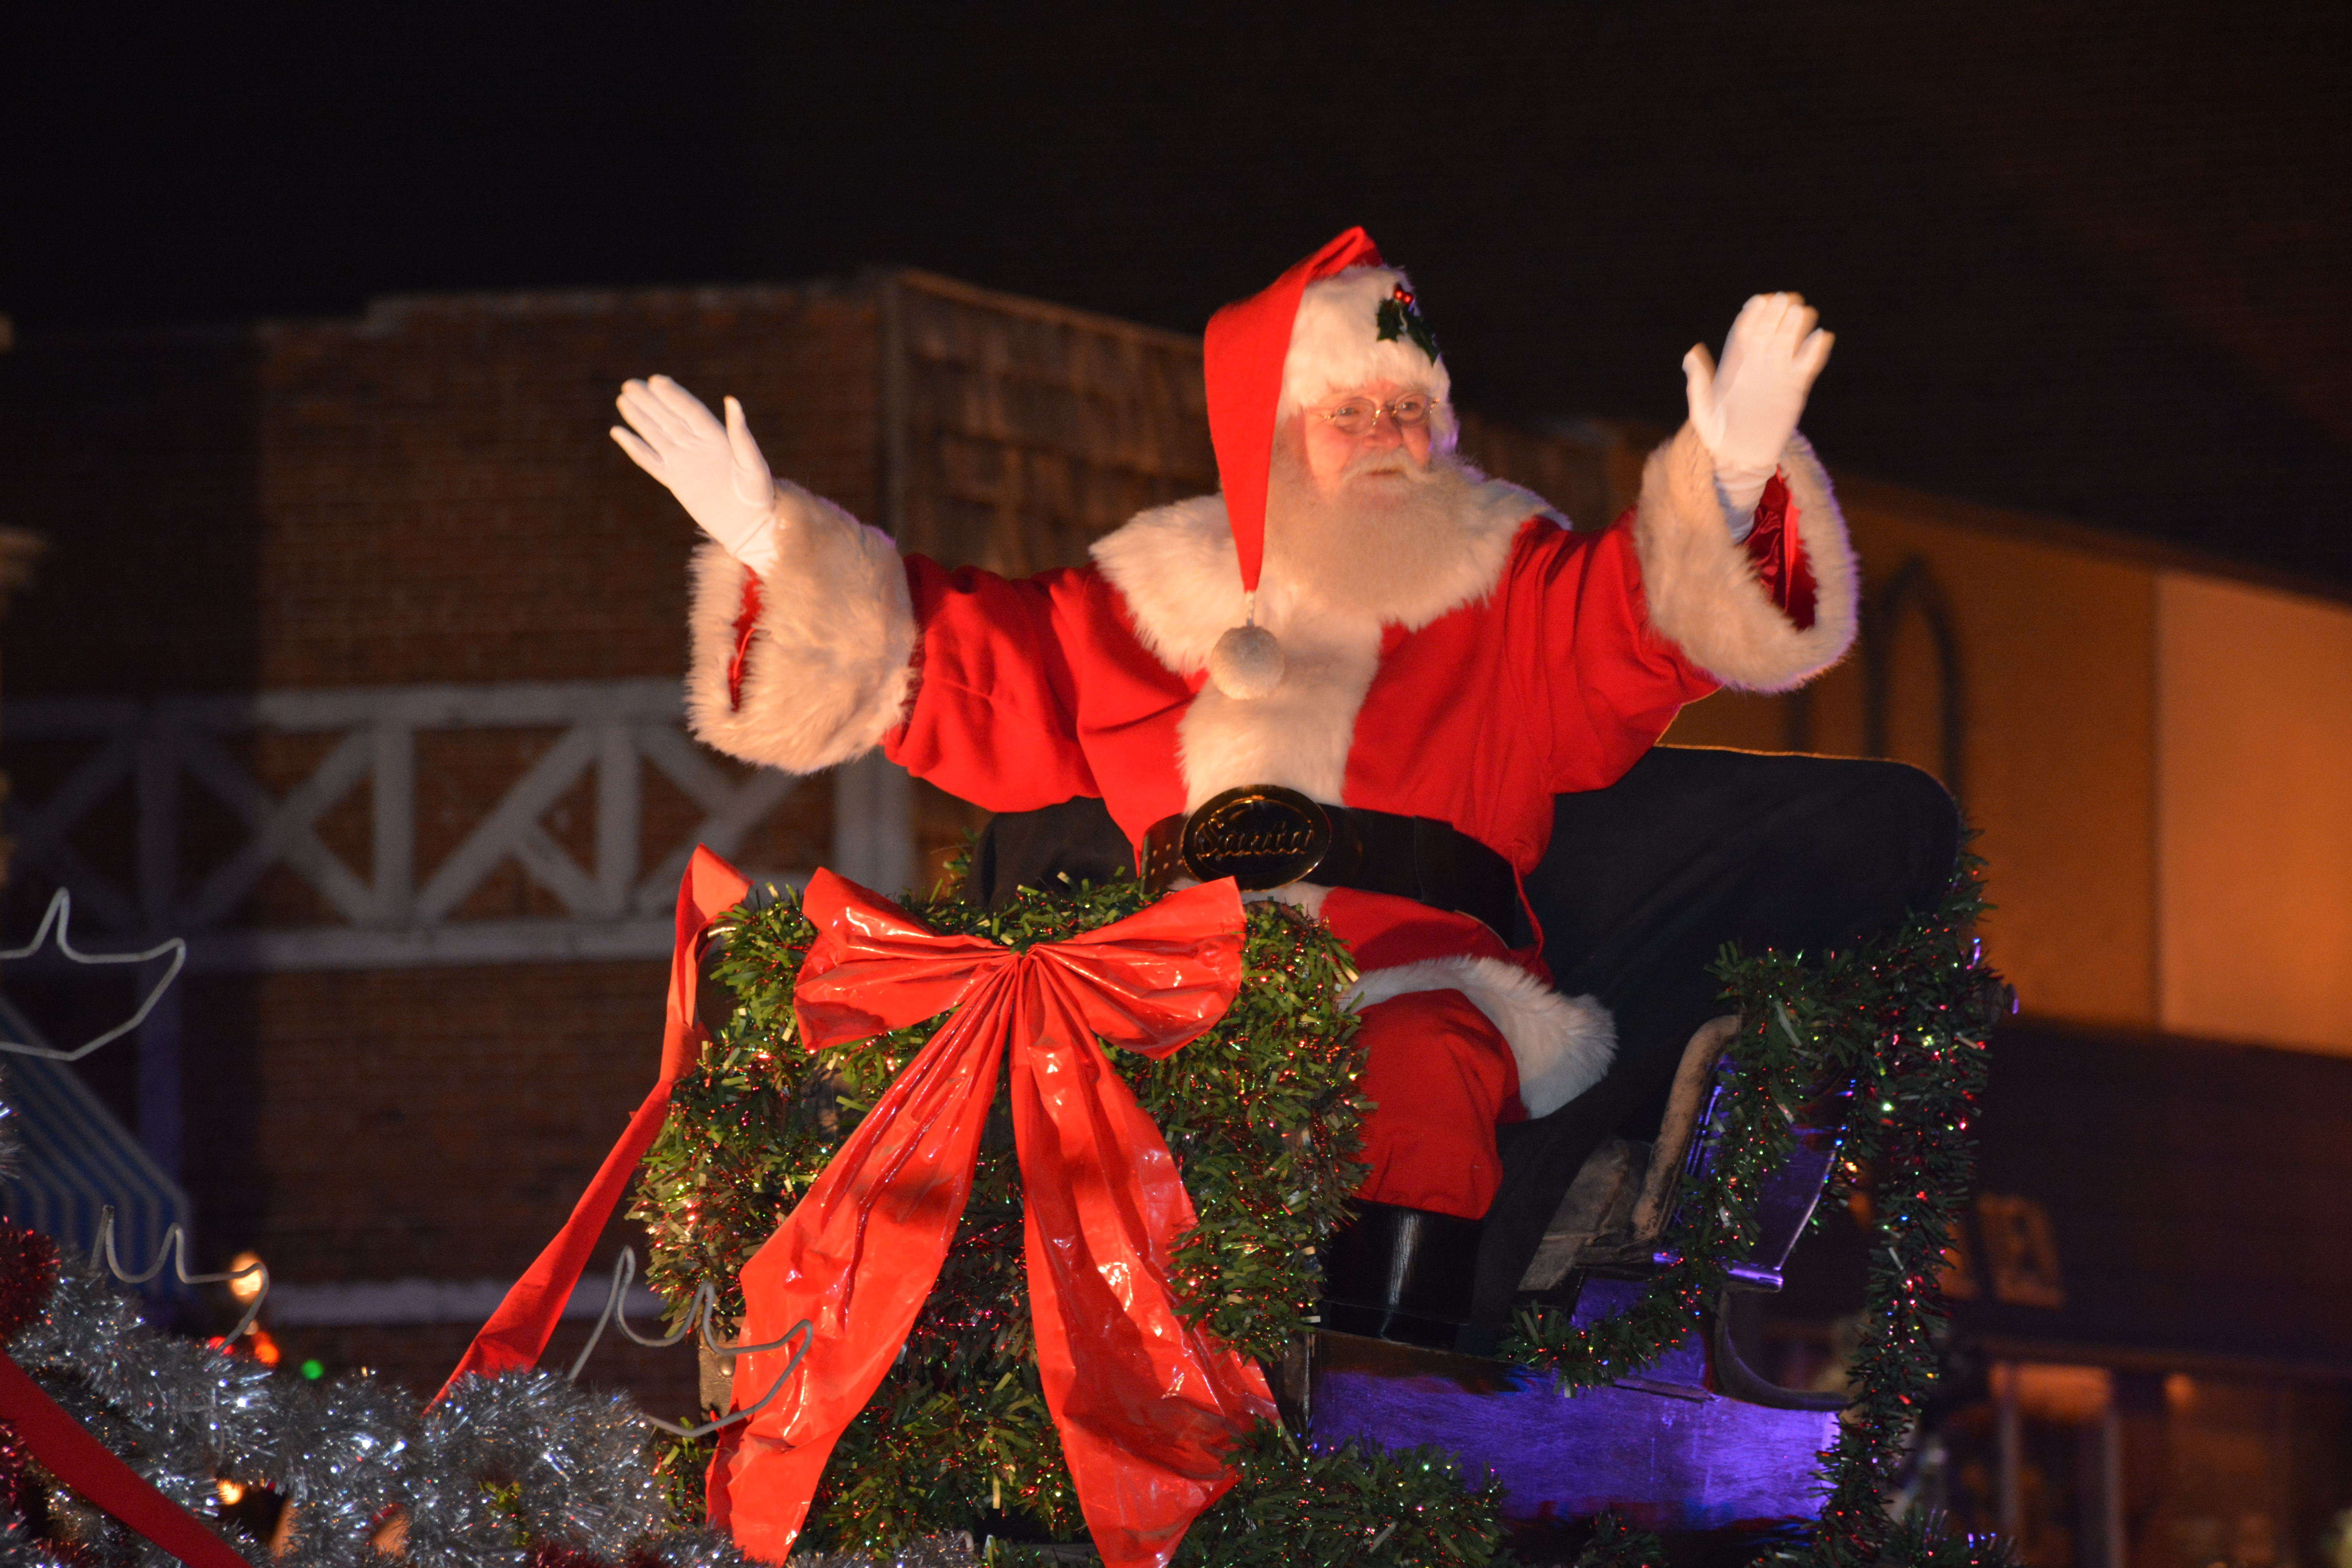 38th Annual Christmas Parade